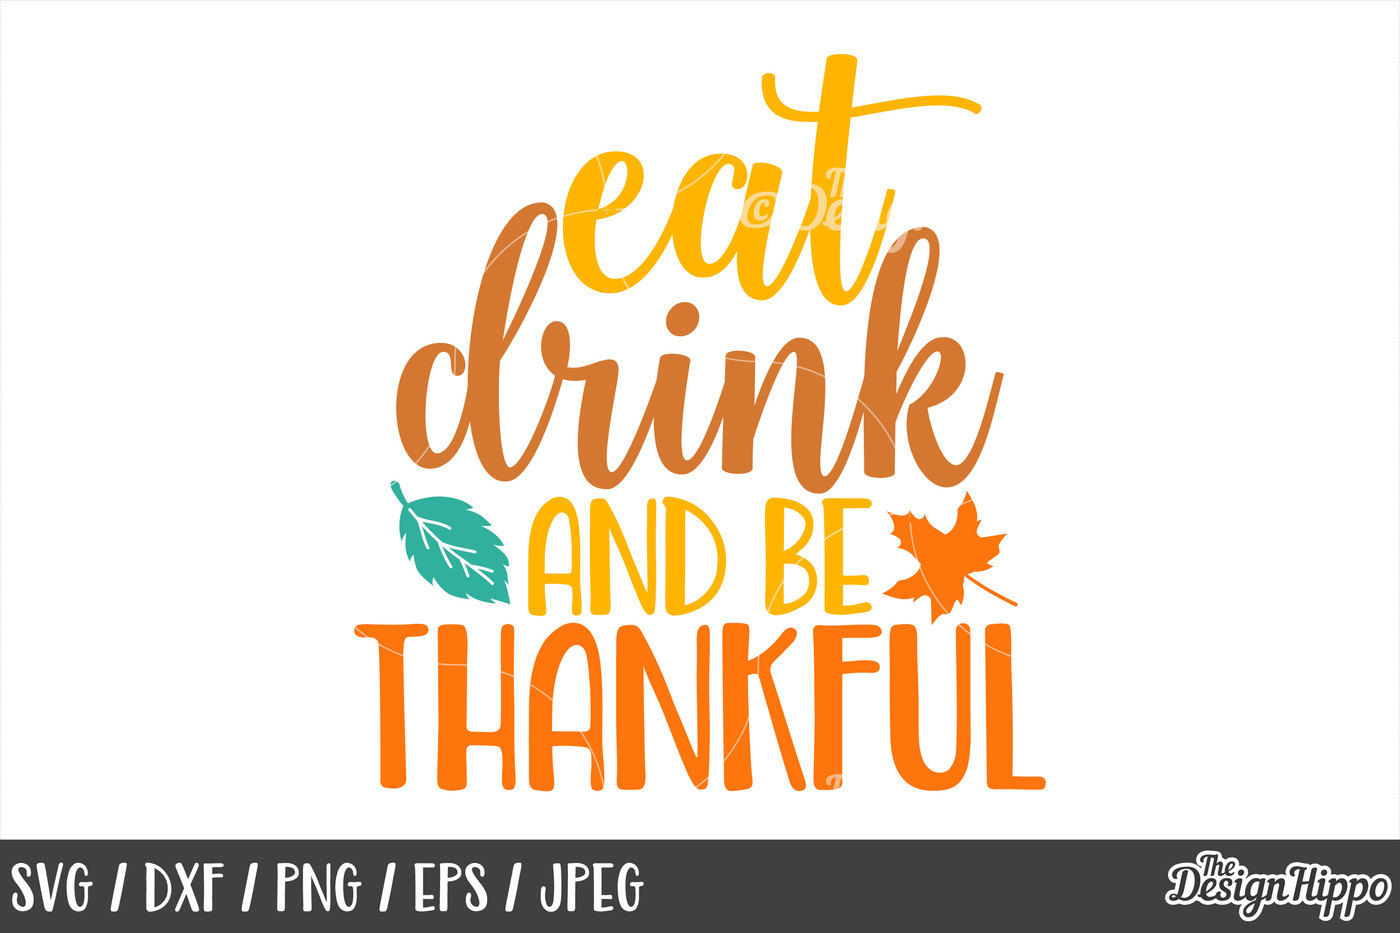 Commercial Use Digital Design Printing Printmaking Give Thanks Wreath Thanksgiving Fall Svg Dxf Png Files For Cutting Machines Like Silhouette Cameo And Cricut Craft Supplies Tools Visual Arts